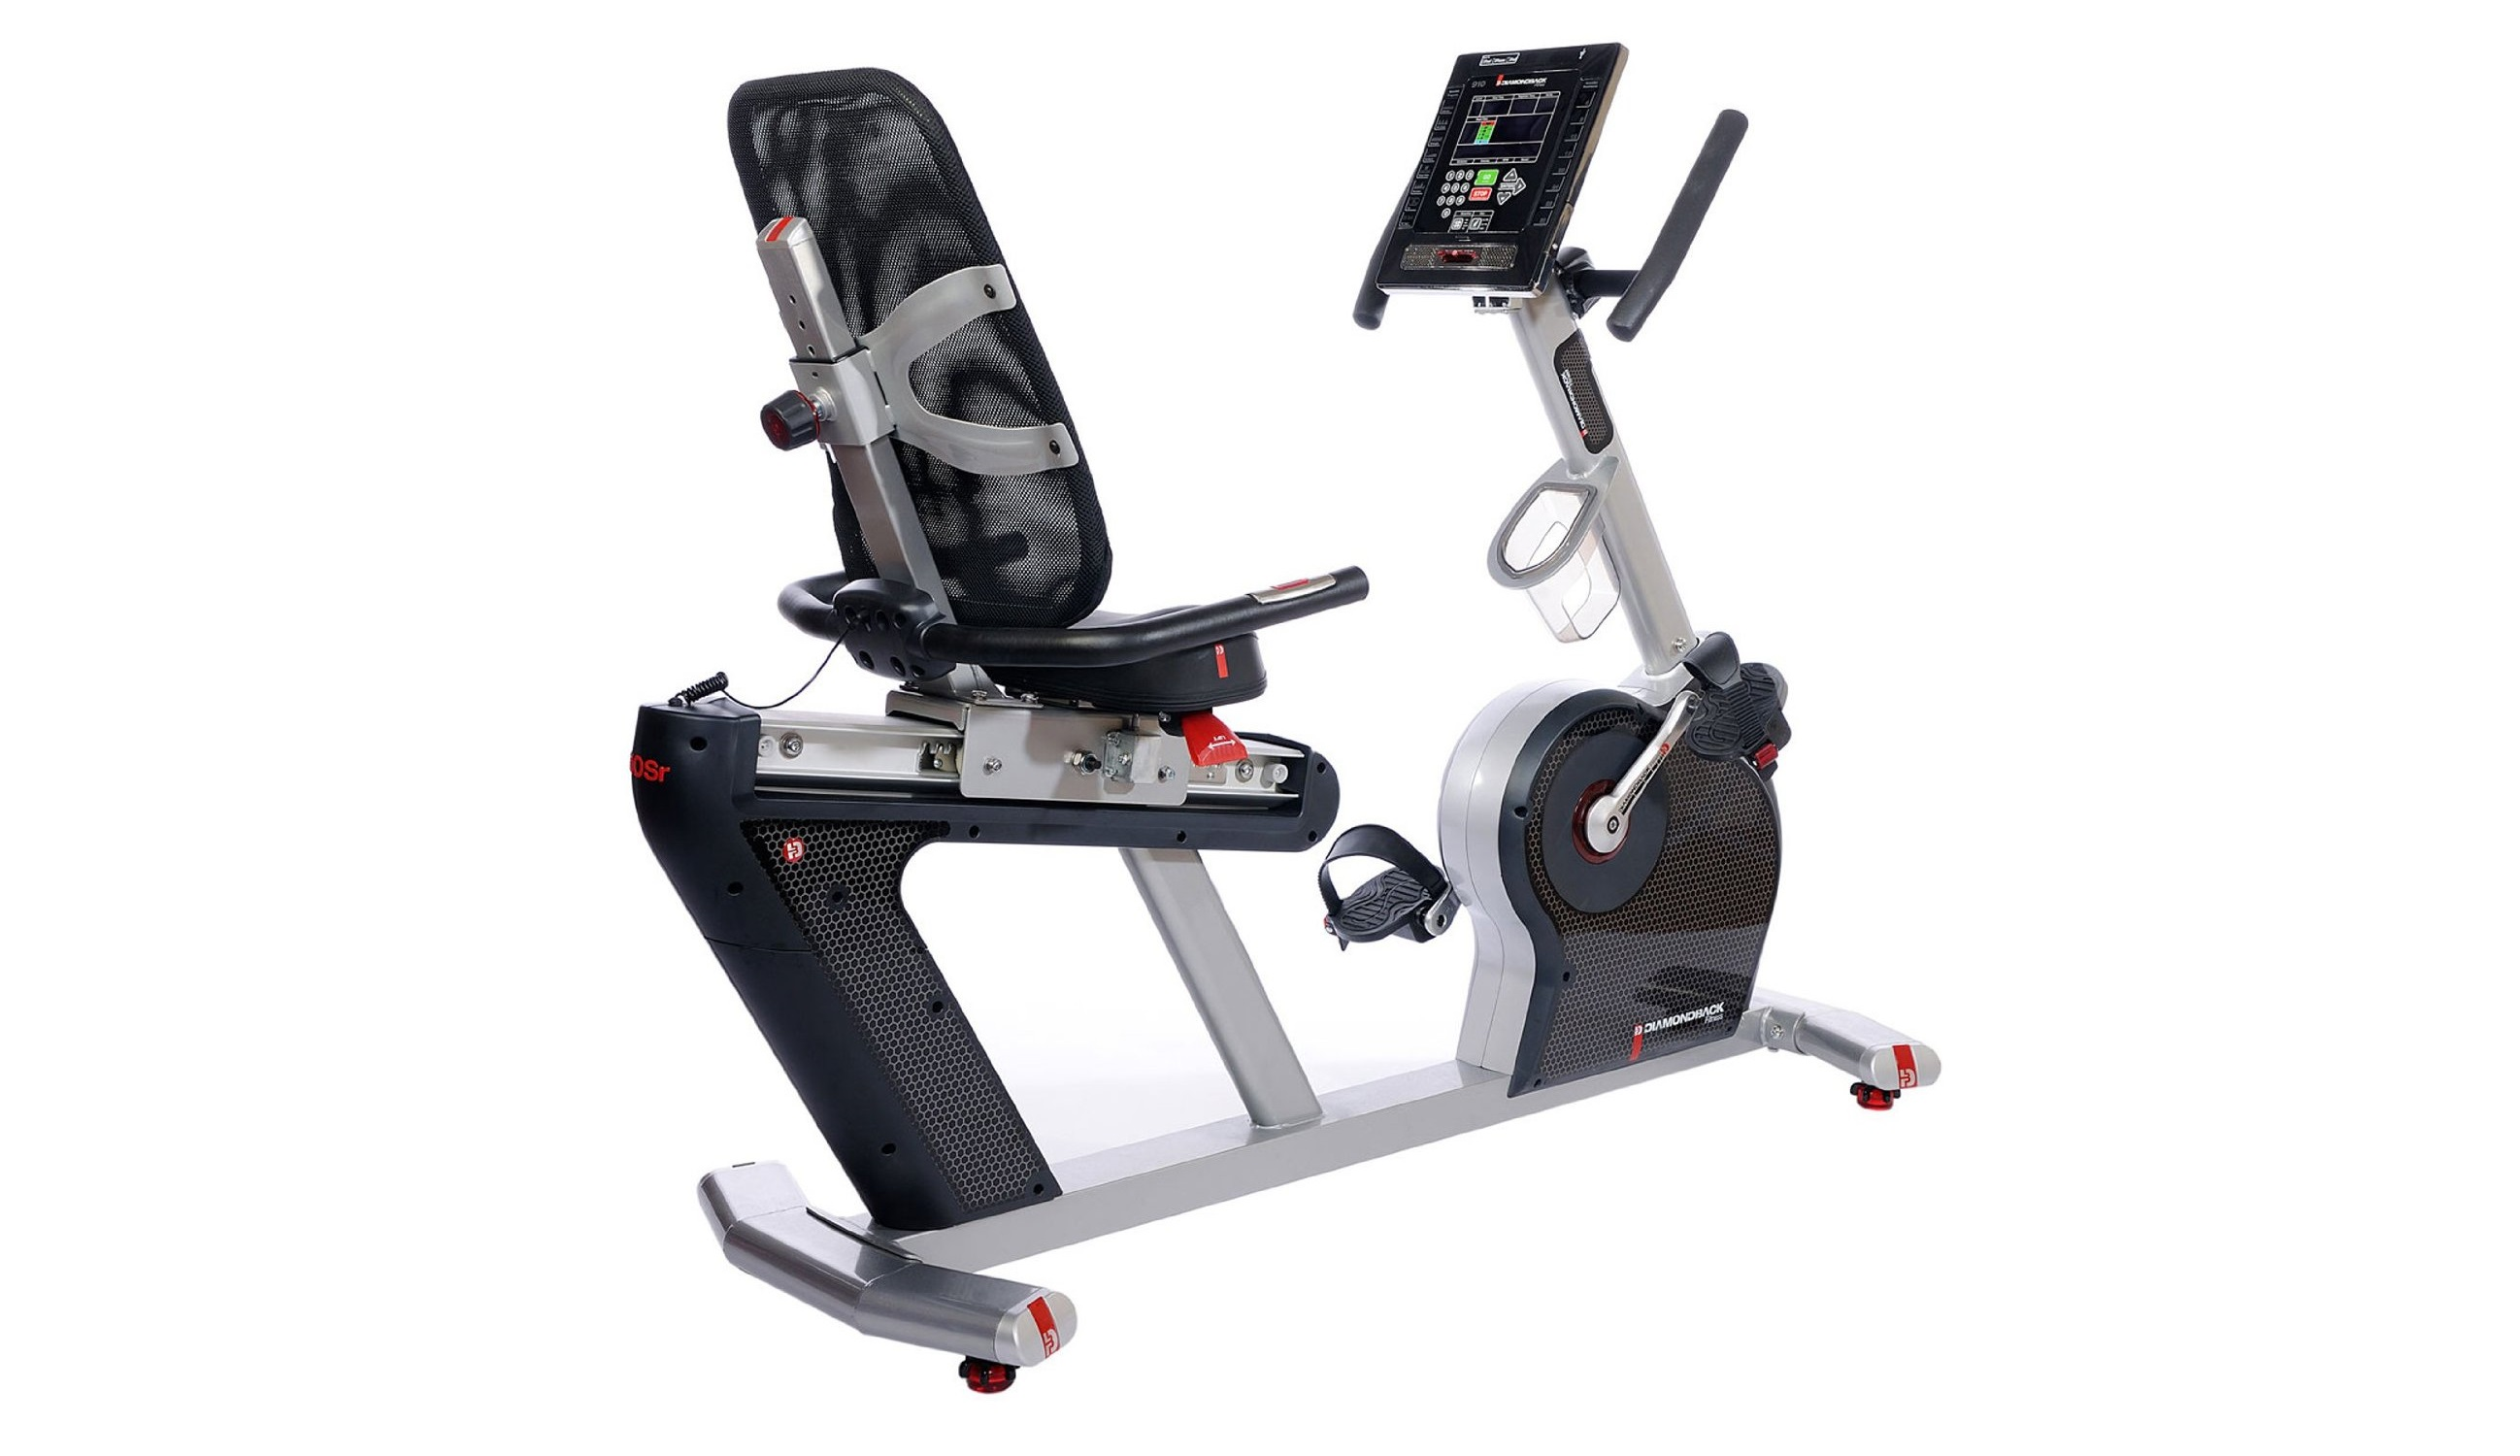 The Best Cardio Machines for Weight Loss